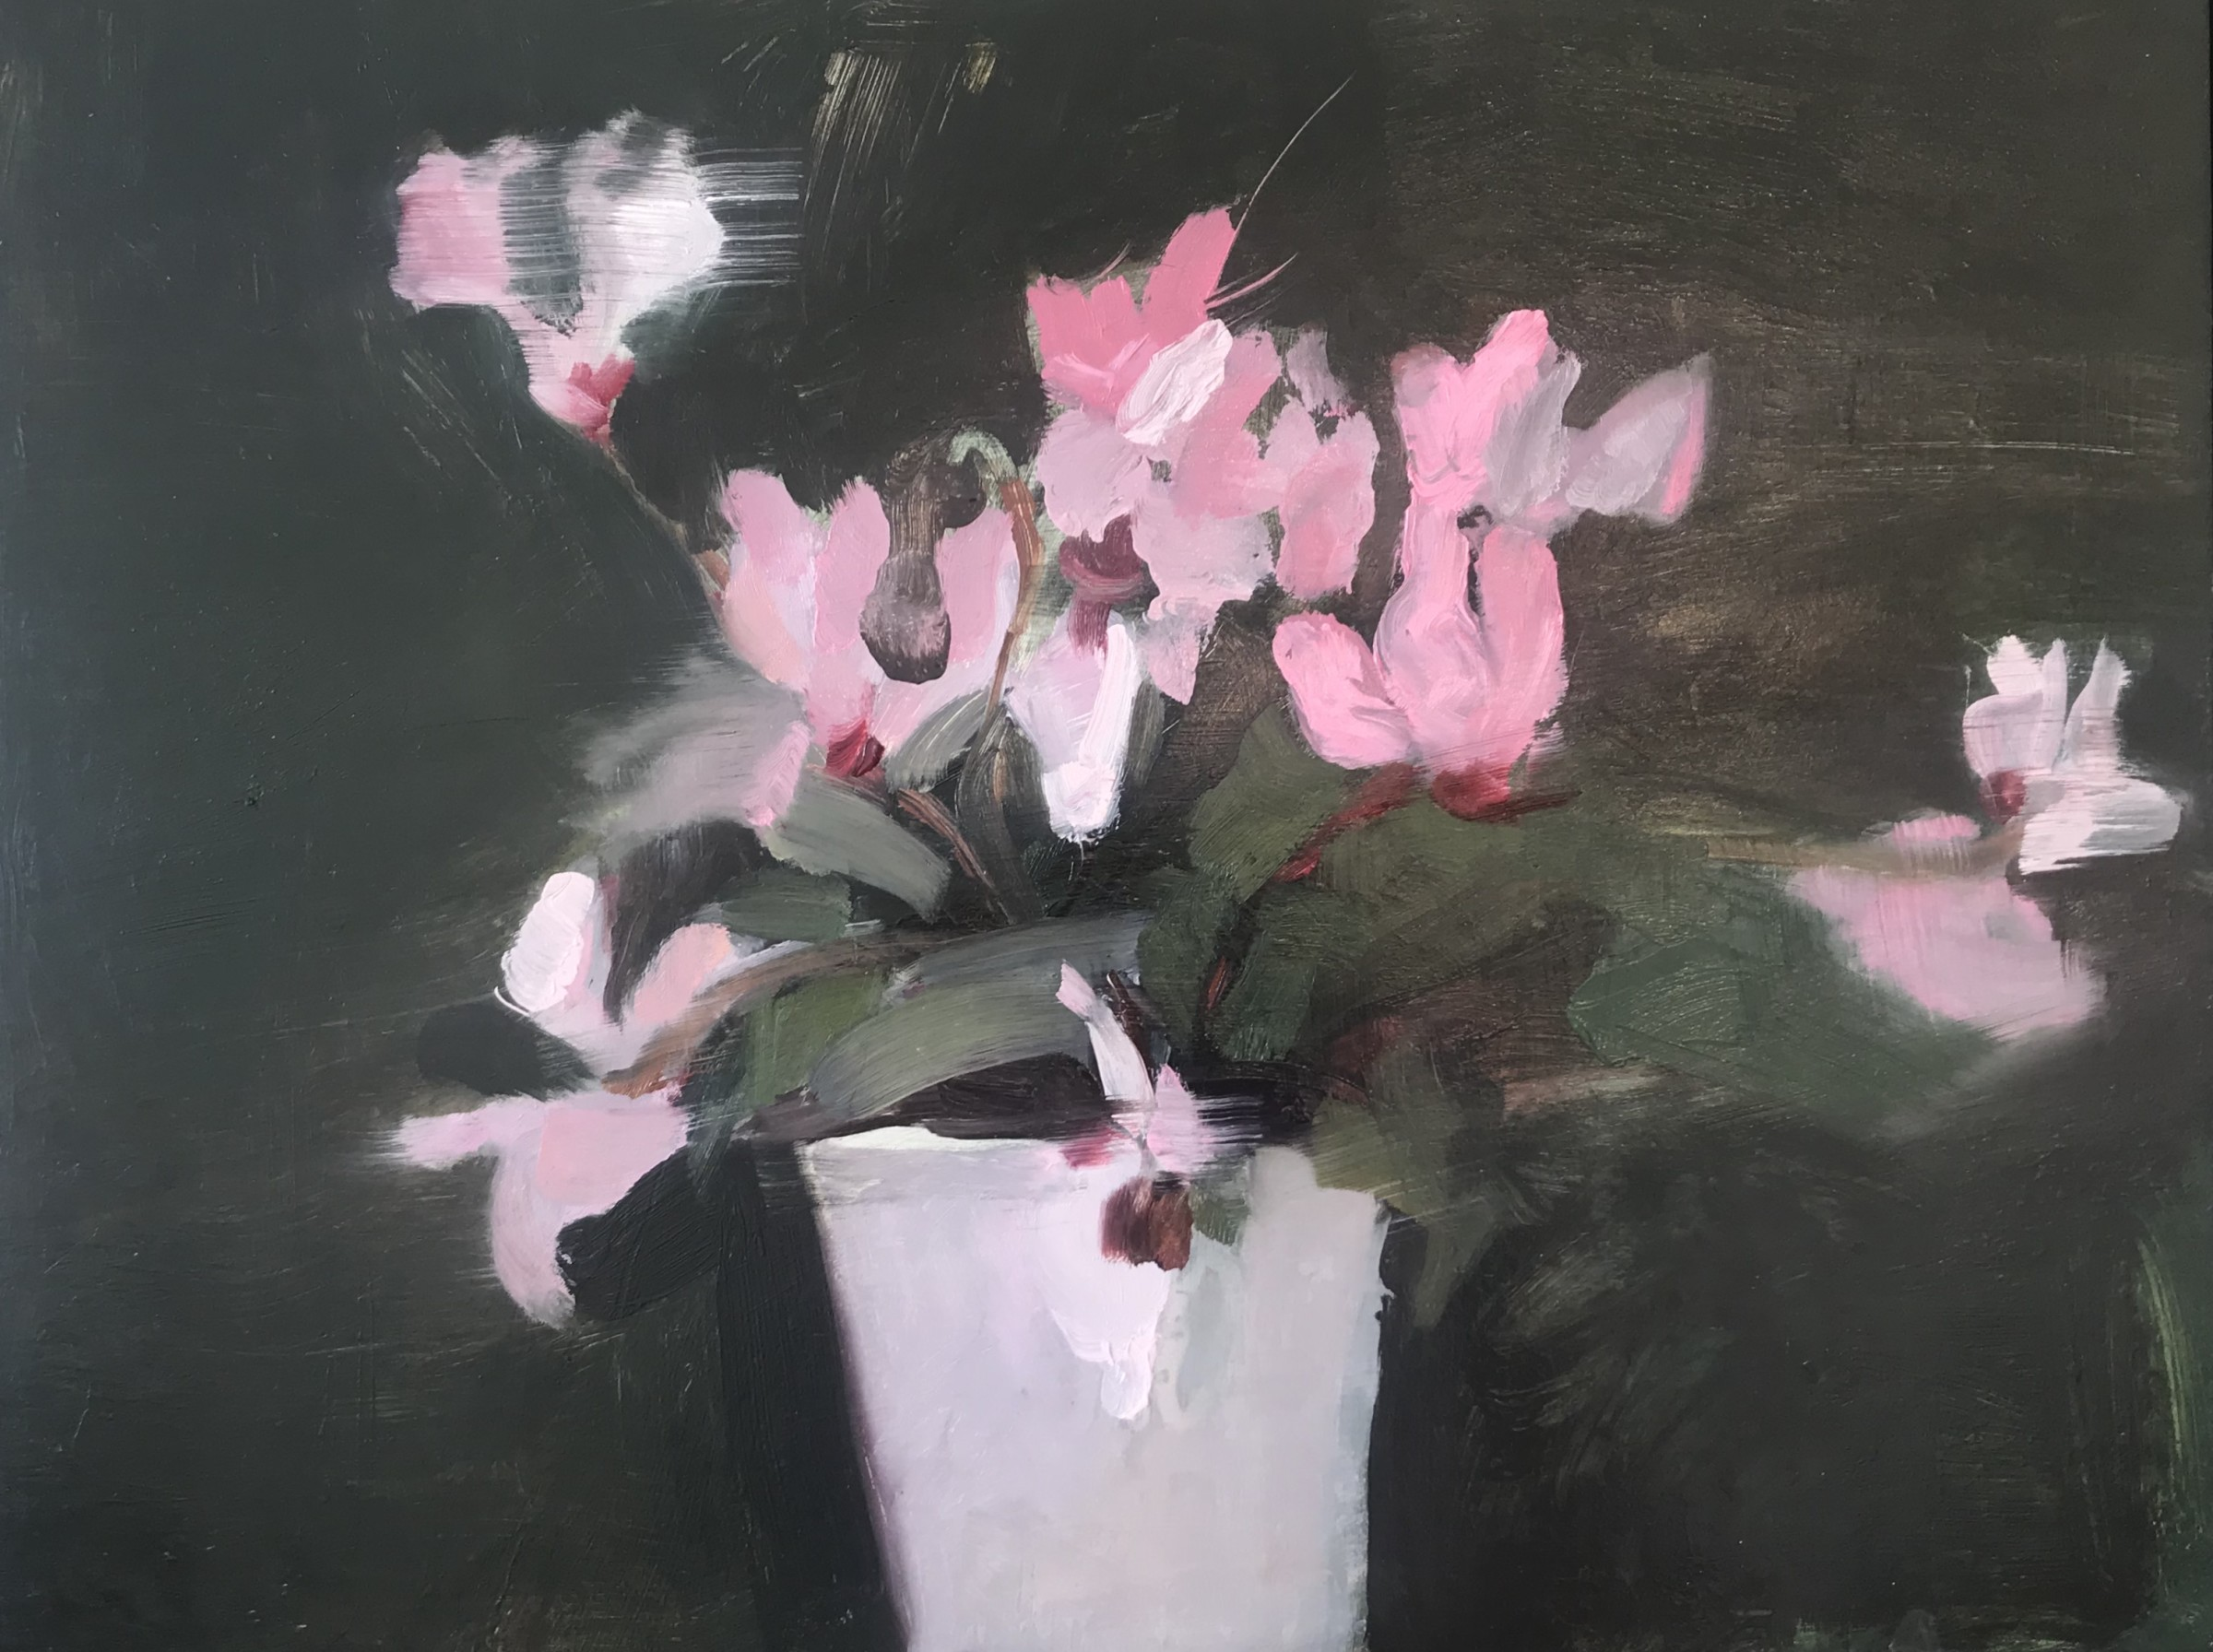 """<span class=""""link fancybox-details-link""""><a href=""""/artists/56-hadas-tal/works/769-hadas-tal-pink-cyclamen/"""">View Detail Page</a></span><div class=""""artist""""><strong>Hadas Tal</strong></div> <div class=""""title""""><em>Pink Cyclamen</em></div> <div class=""""medium"""">Oil on Wood Panel</div> <div class=""""dimensions"""">13 x 17 inches (with frame)</div>"""